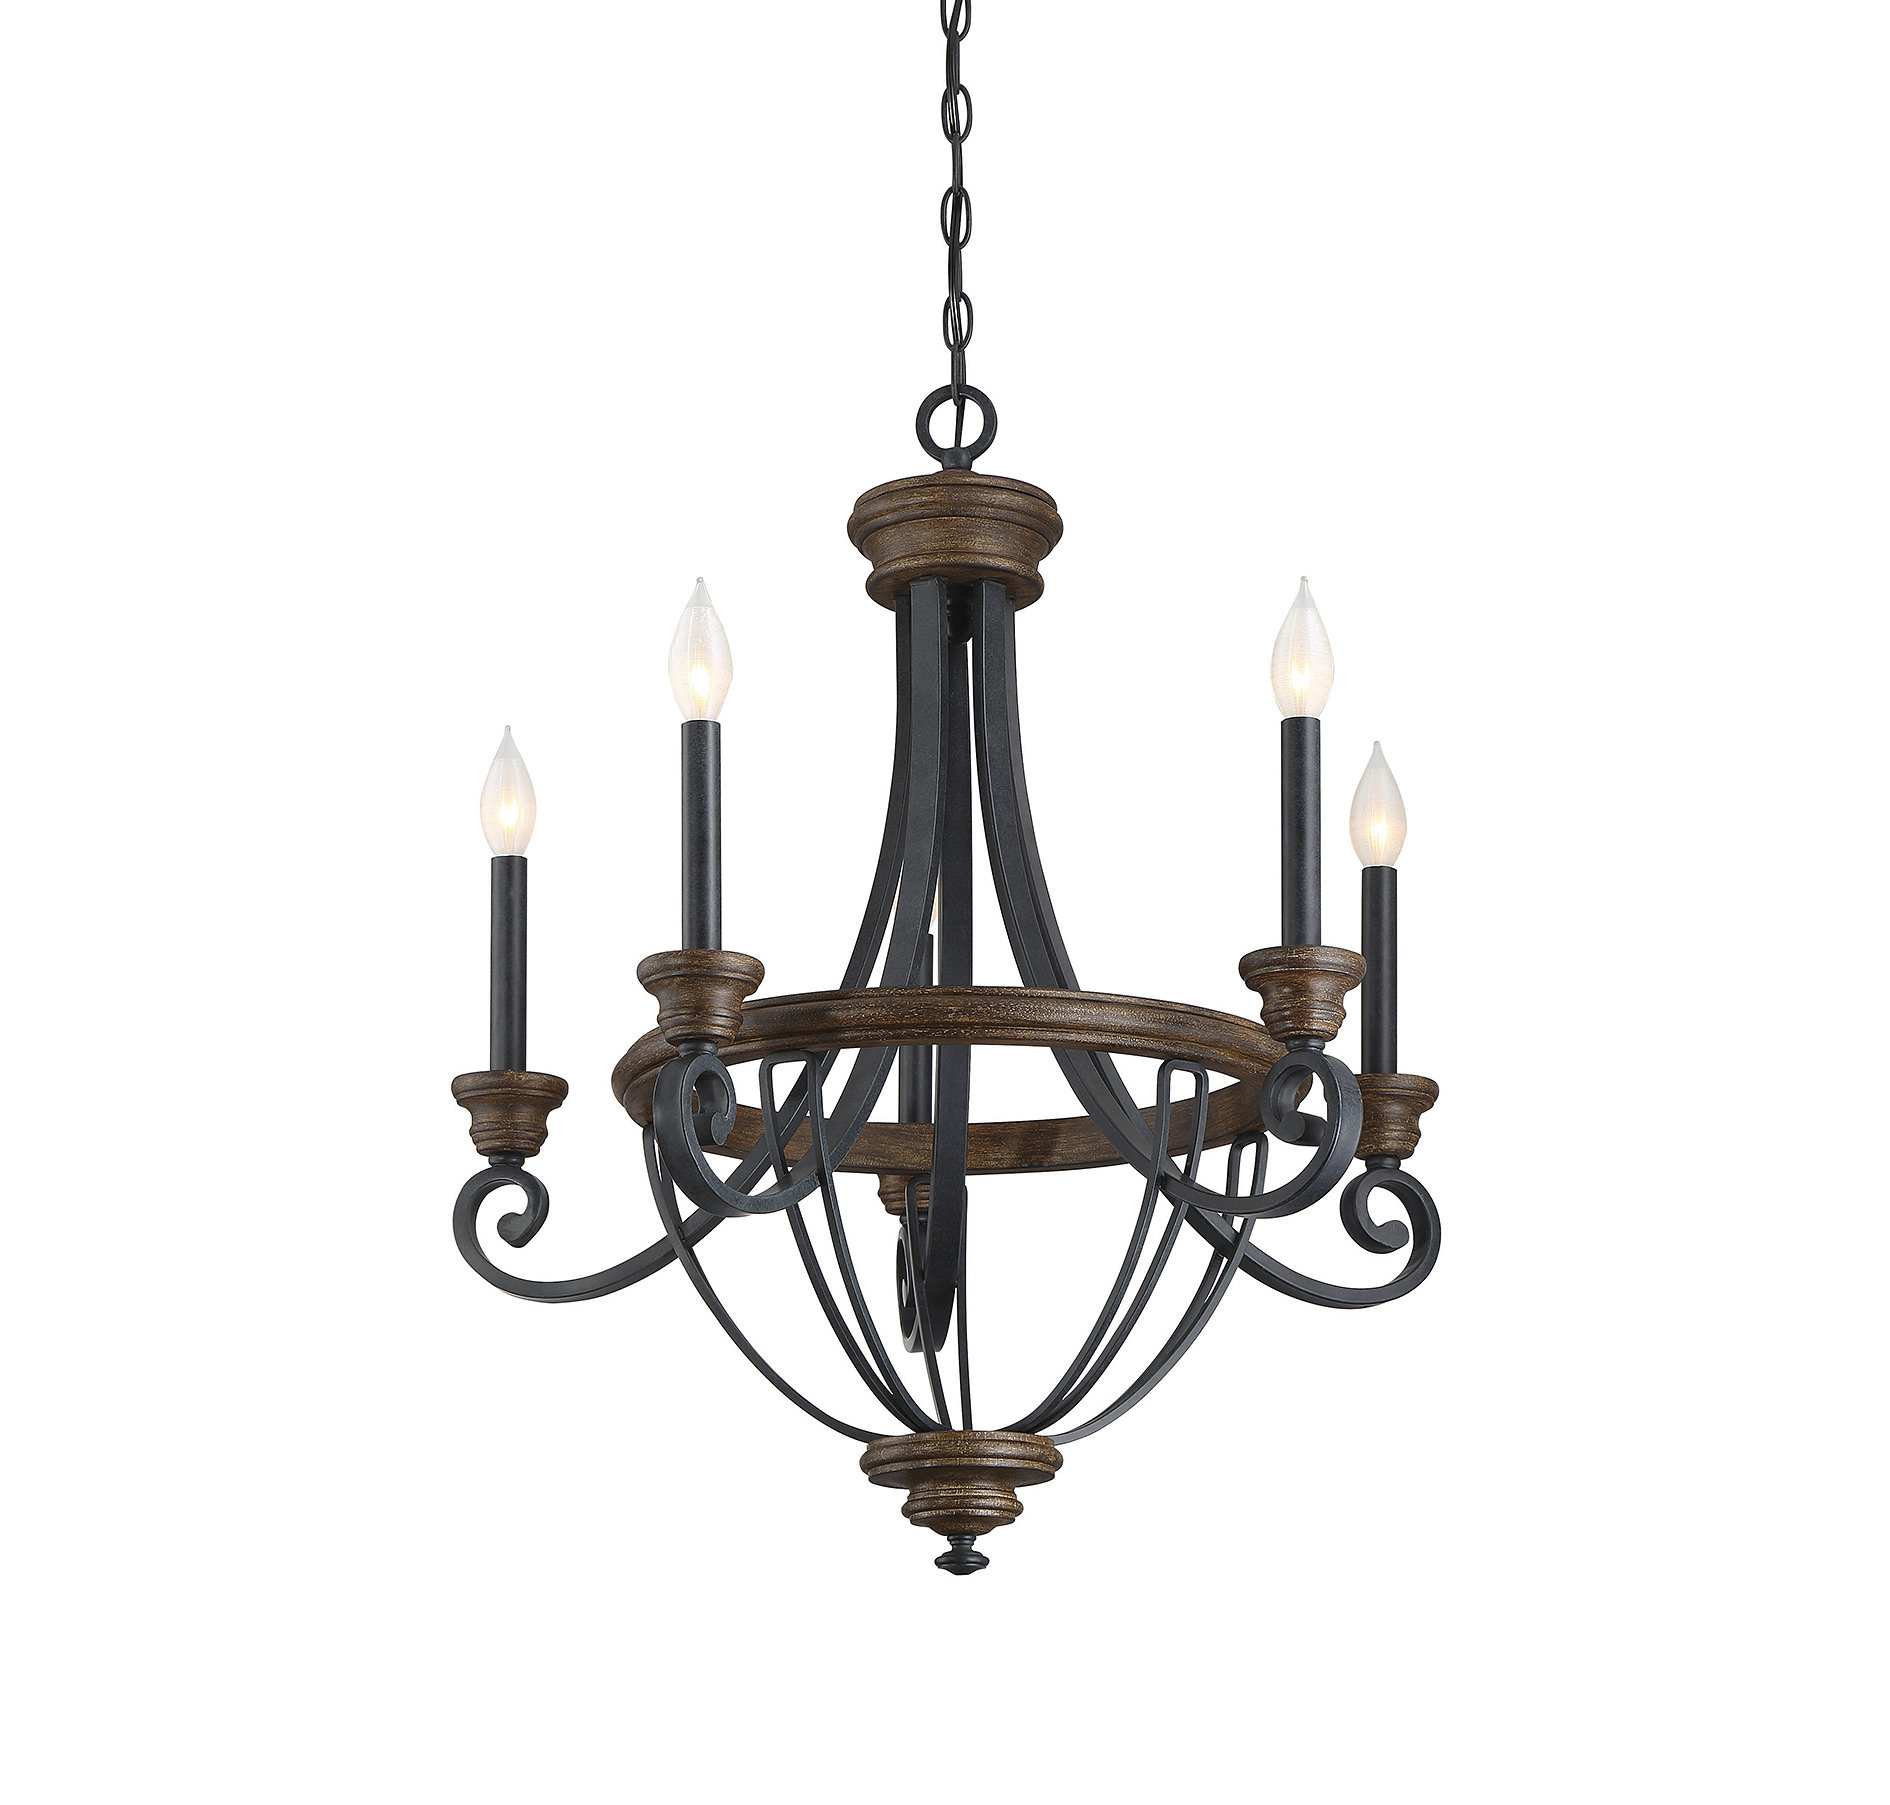 Nanteuil 5 Light Empire Chandelier In Kenna 5 Light Empire Chandeliers (View 8 of 30)